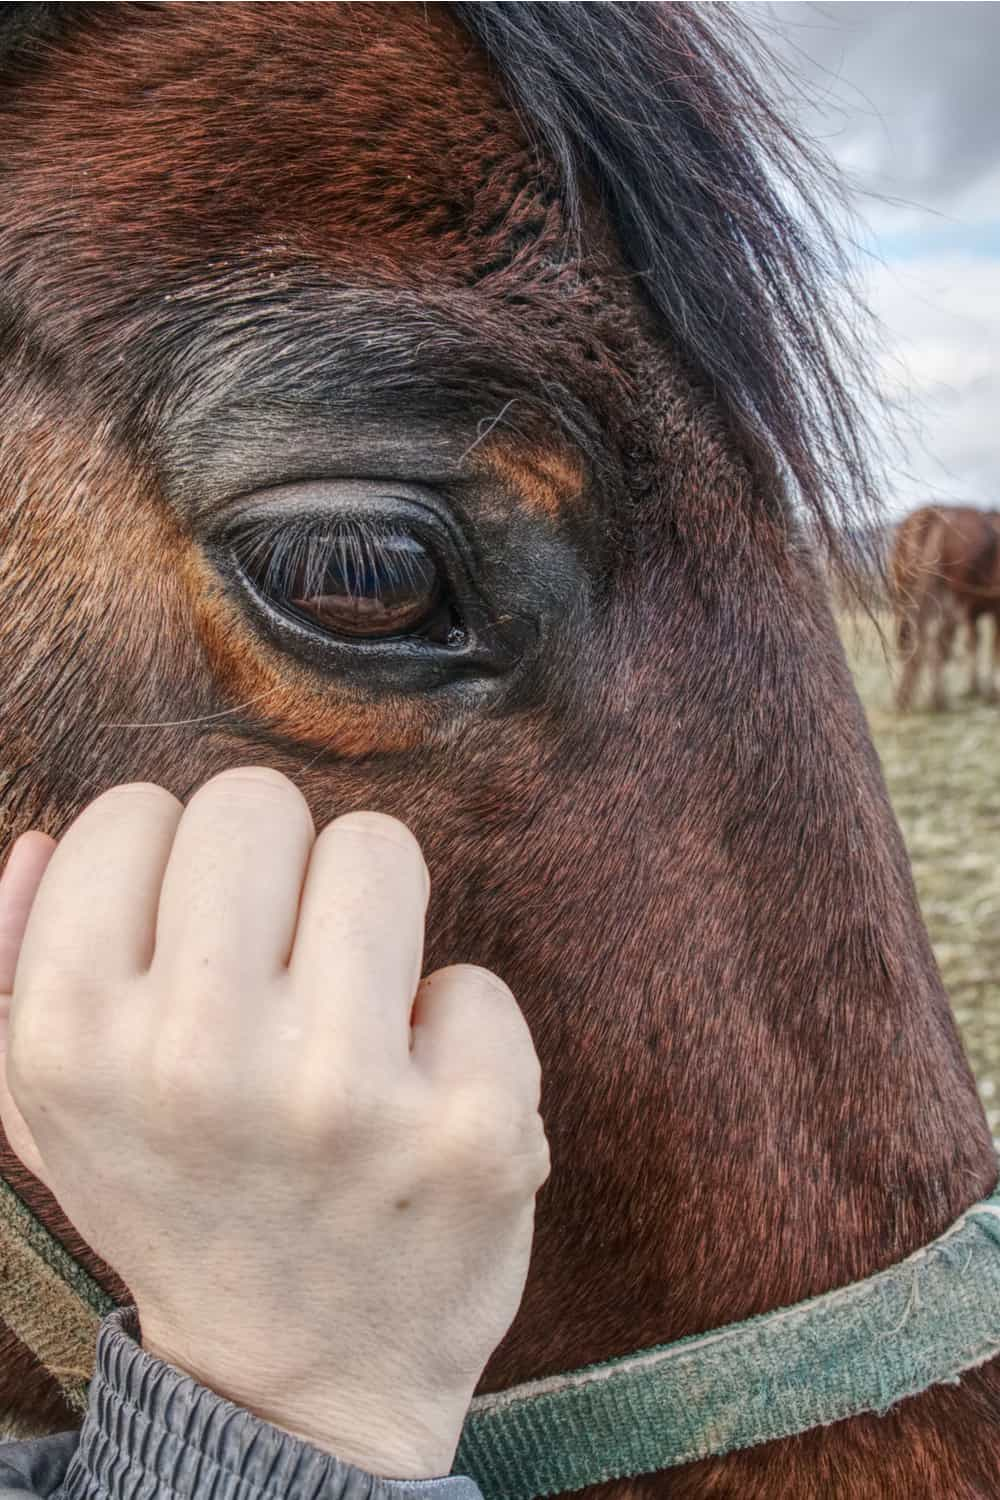 Signs of Dehydration in a Horse